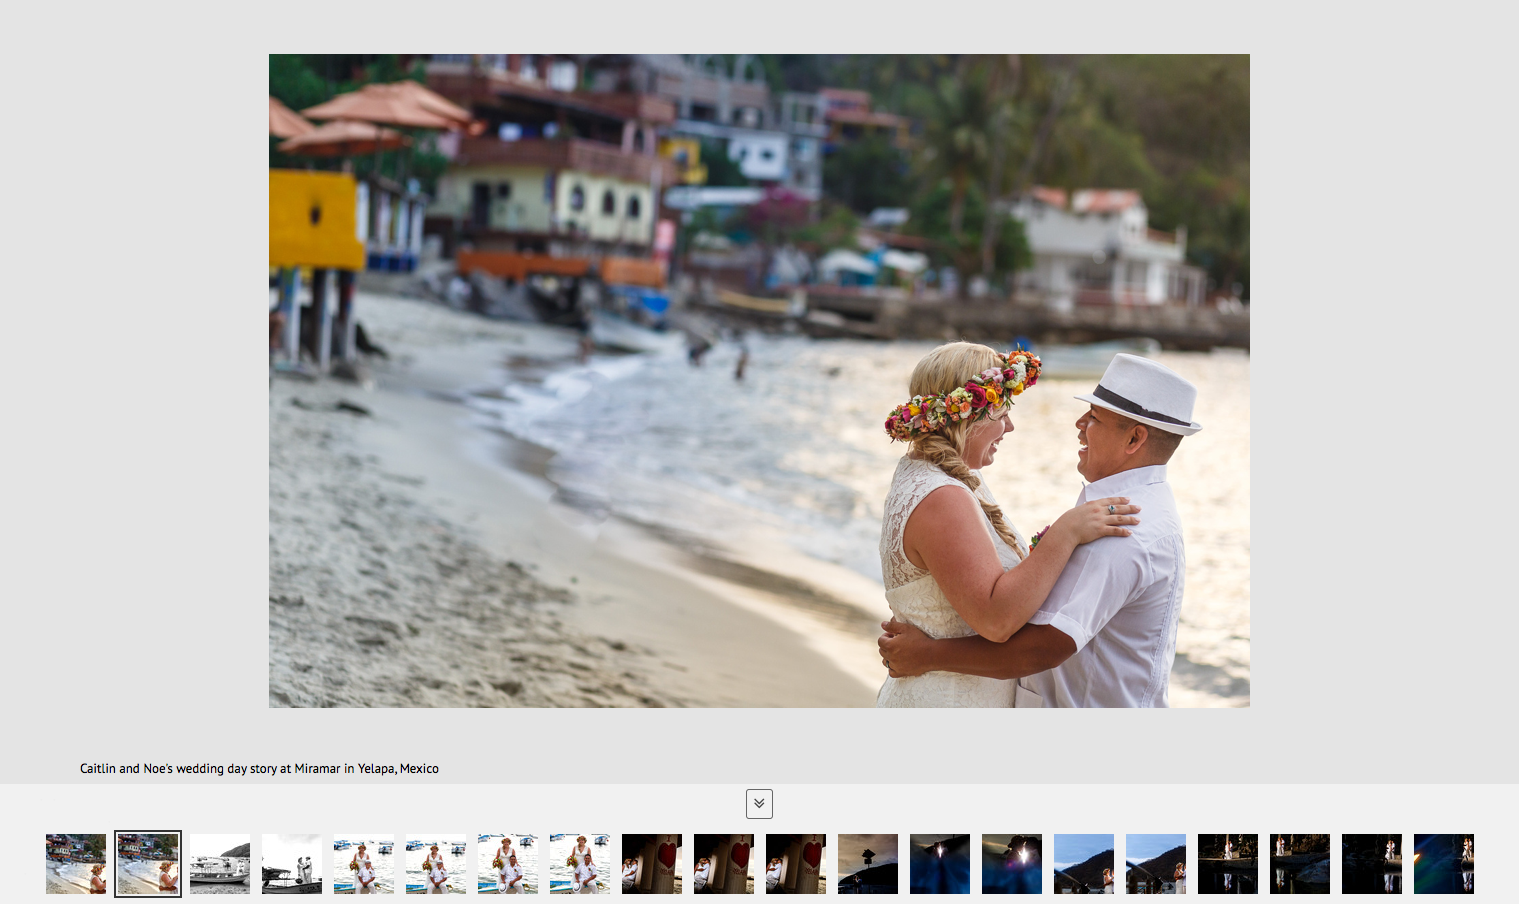 Bride and groom smiling at each other on the beach near Miramar hotel in Yelapa, Mexico.